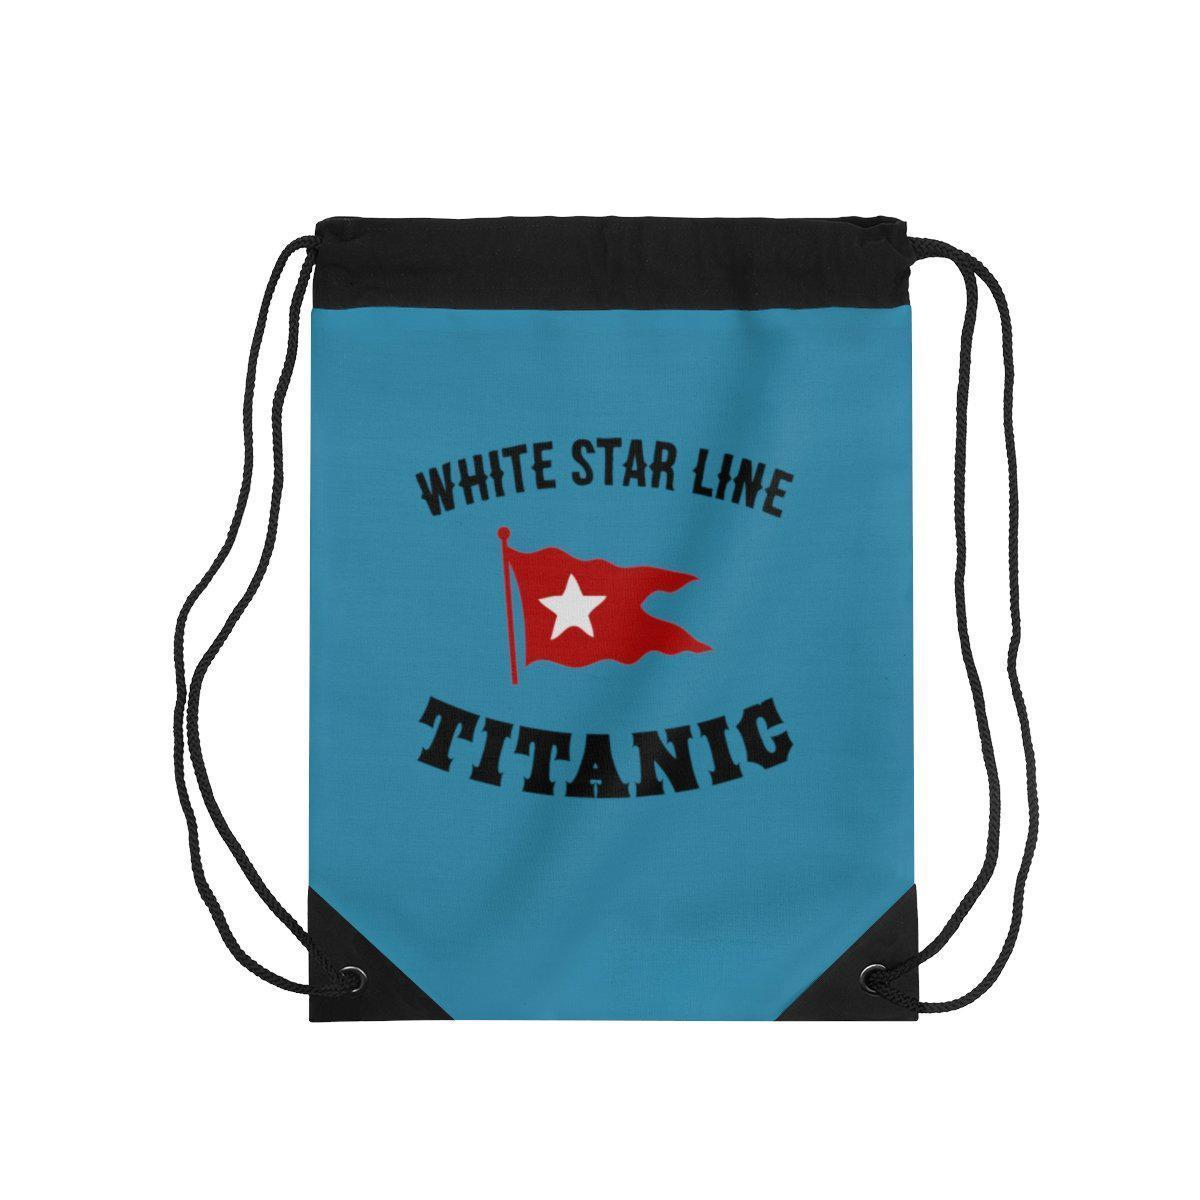 White Star Line drawstring pouch, Titanic boys drawstring bag, teacher gift-drawstring bag-Printify-titanic-school-tote-bag-backpack-duffel-drawstring-white-star-line-Titanic shop